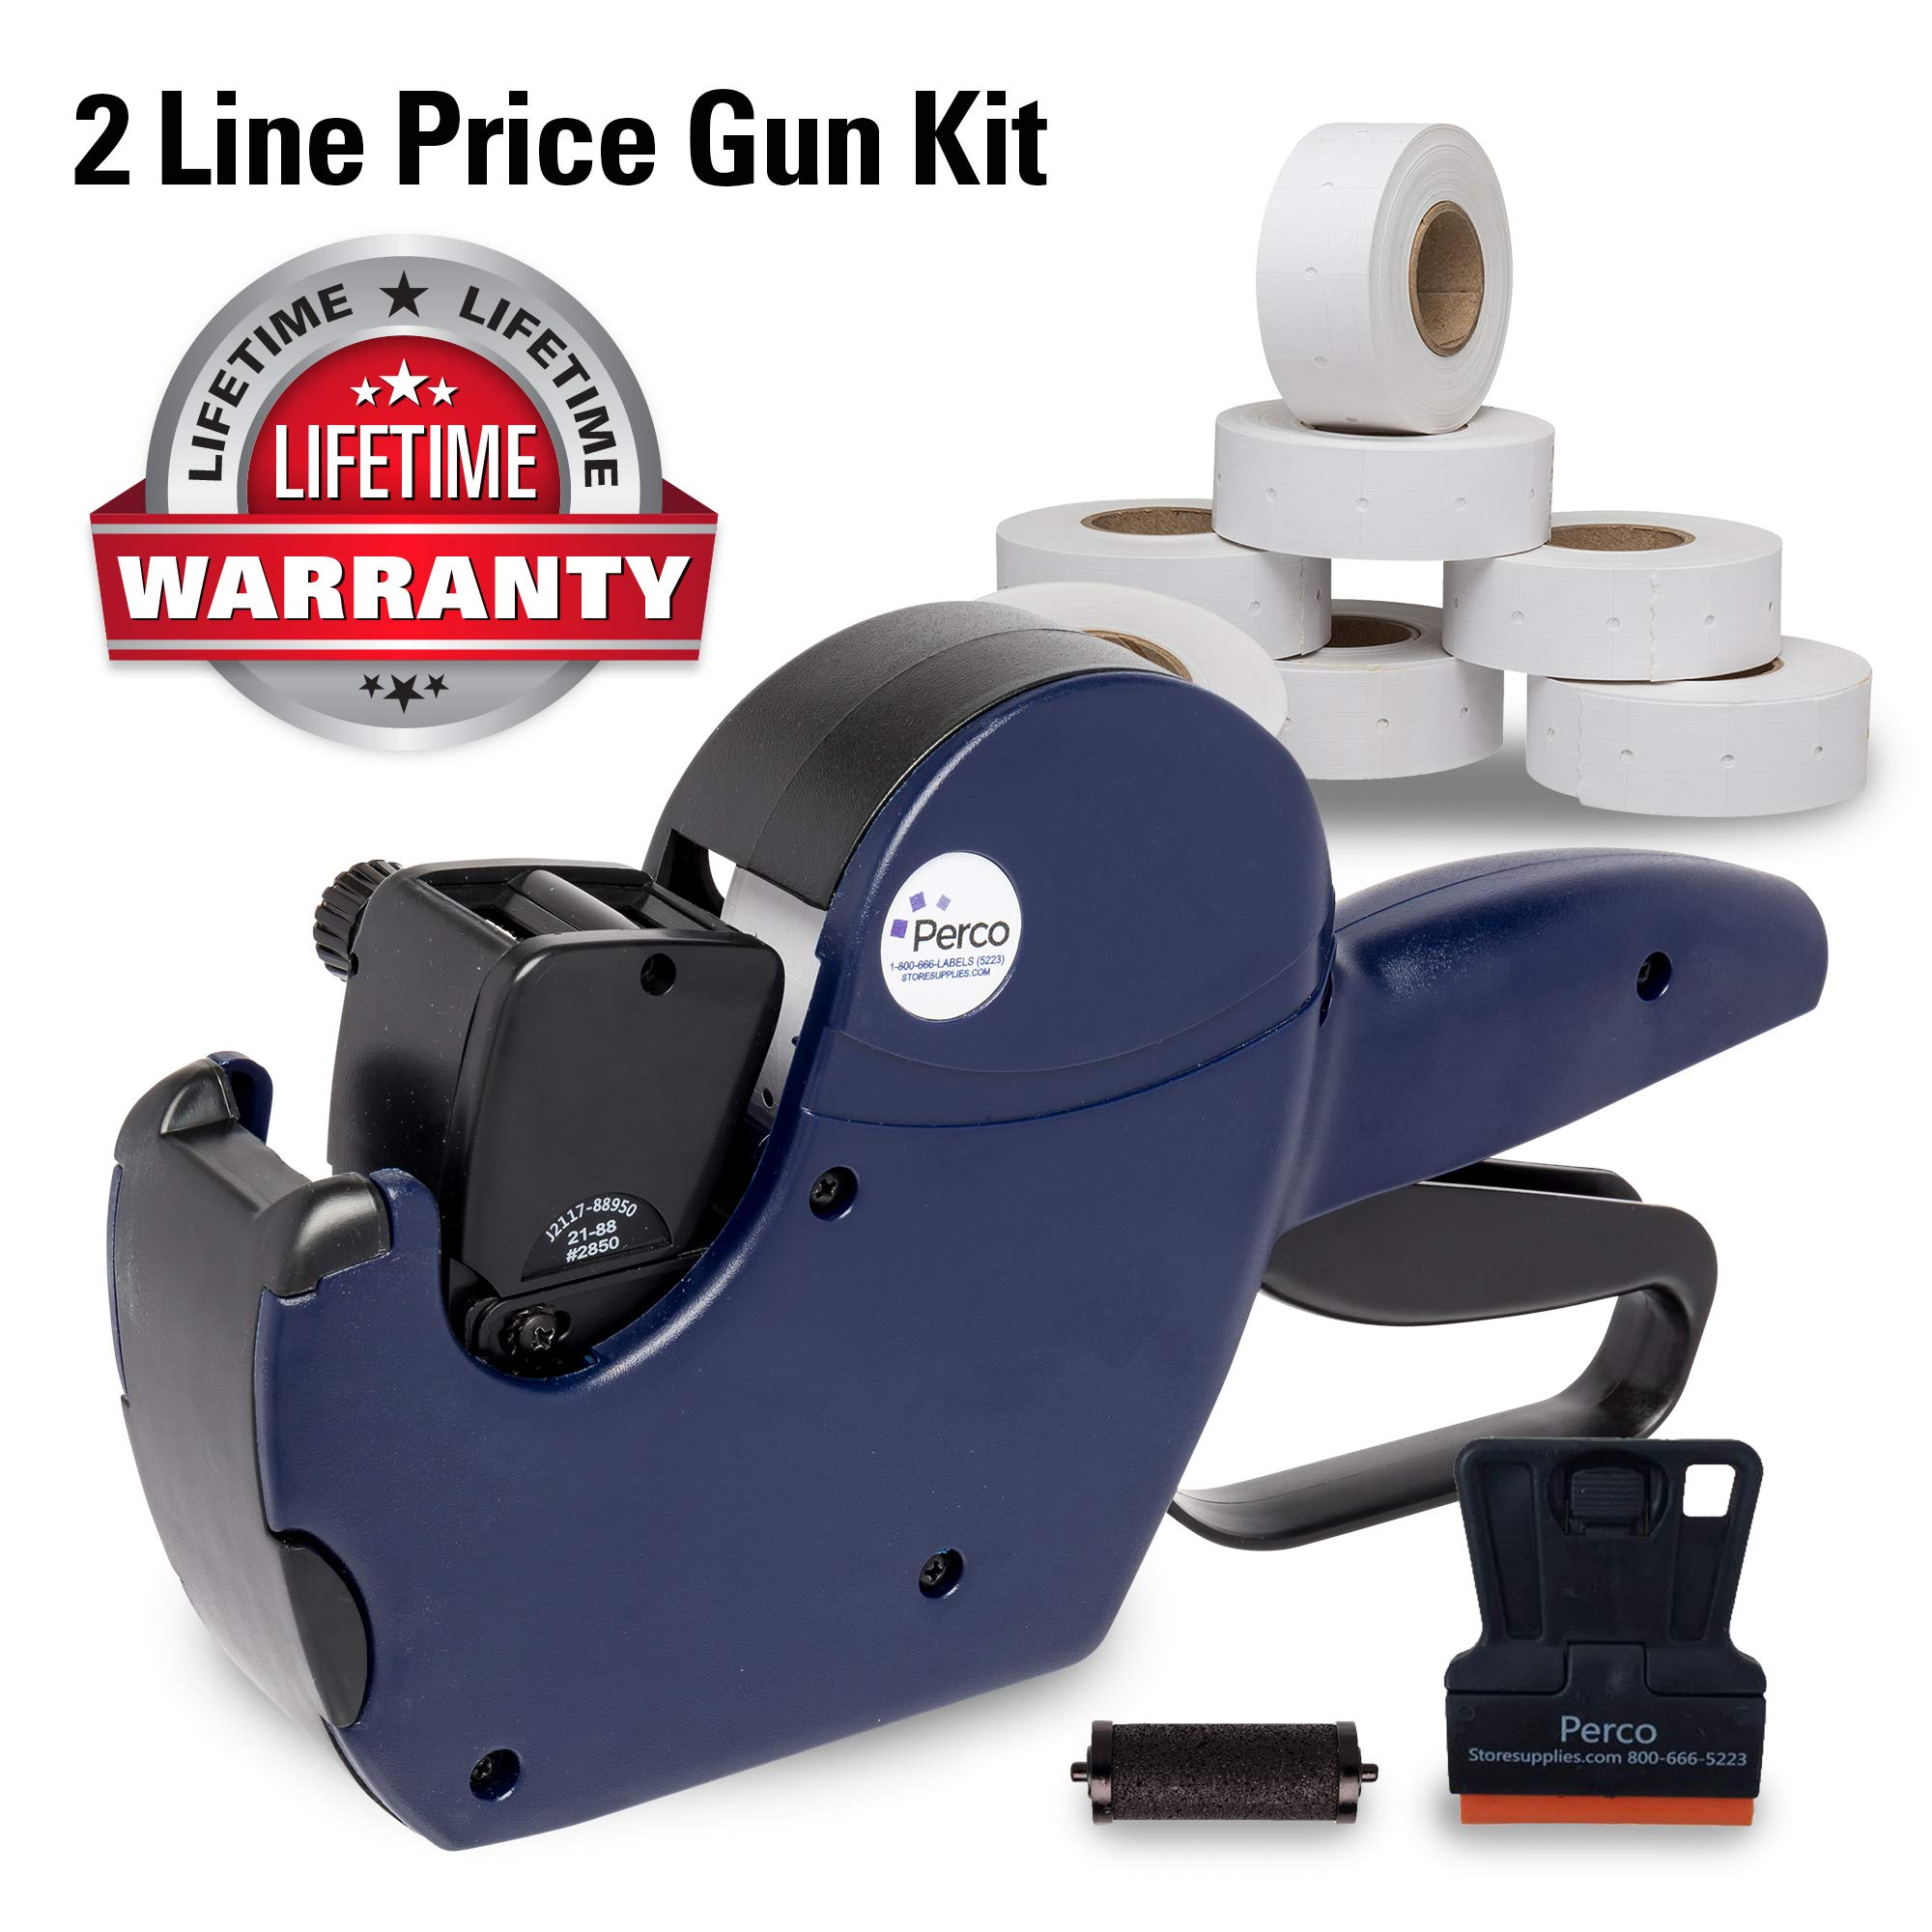 Perco 2 Line Price Gun: 8 Digit 2 Line Price Label Gun Preloaded with Roll of 750 White Labels & Inker by Perco